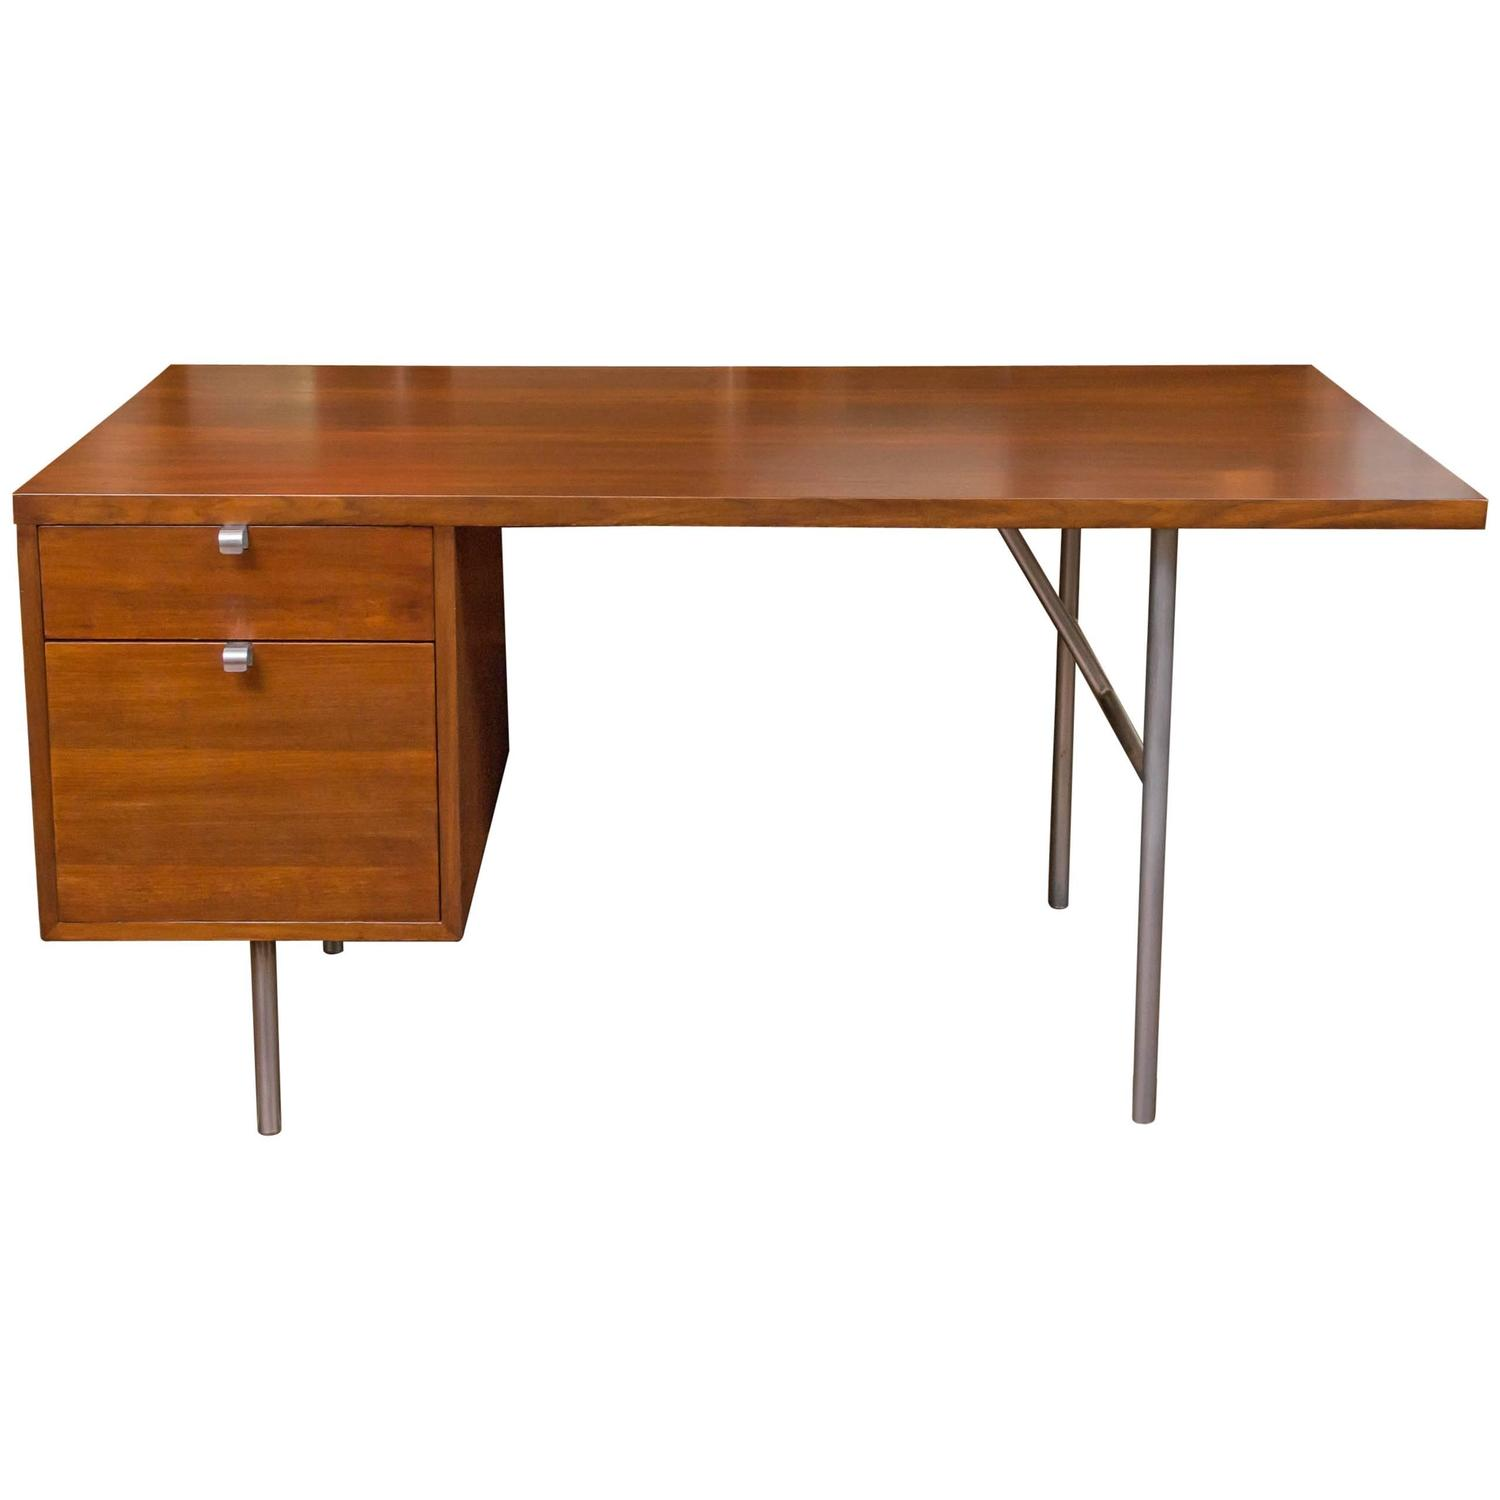 George Nelson Desk For Herman Miller For Sale At 1stdibs